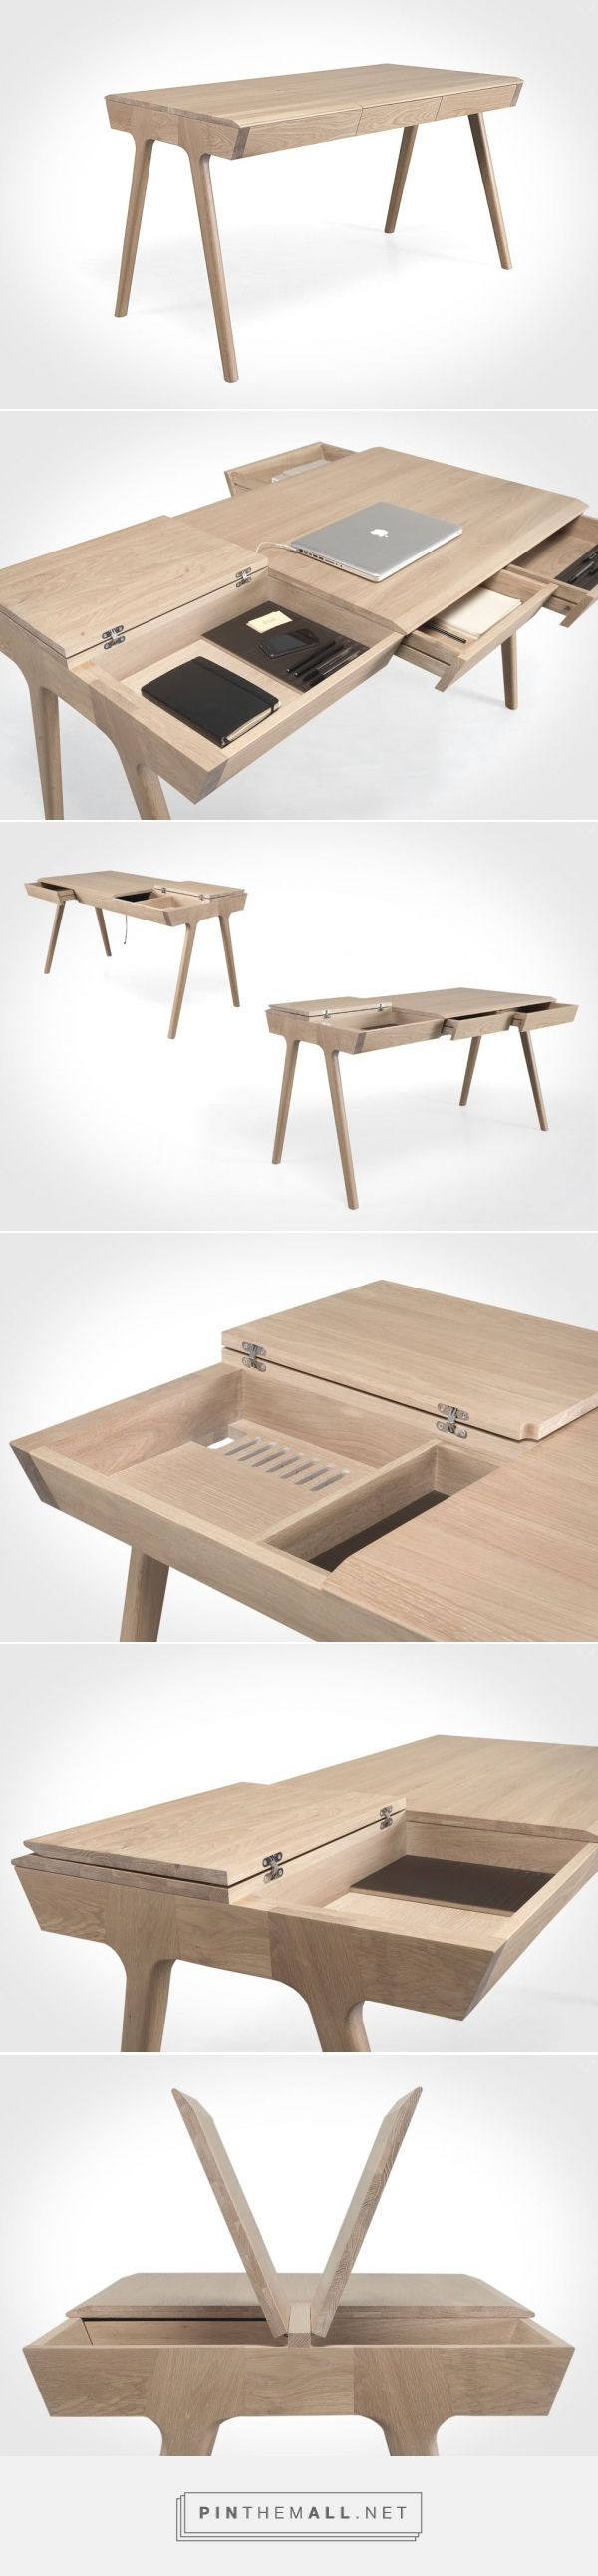 Metis Desk | LumberJac - created via https://pinthemall.net